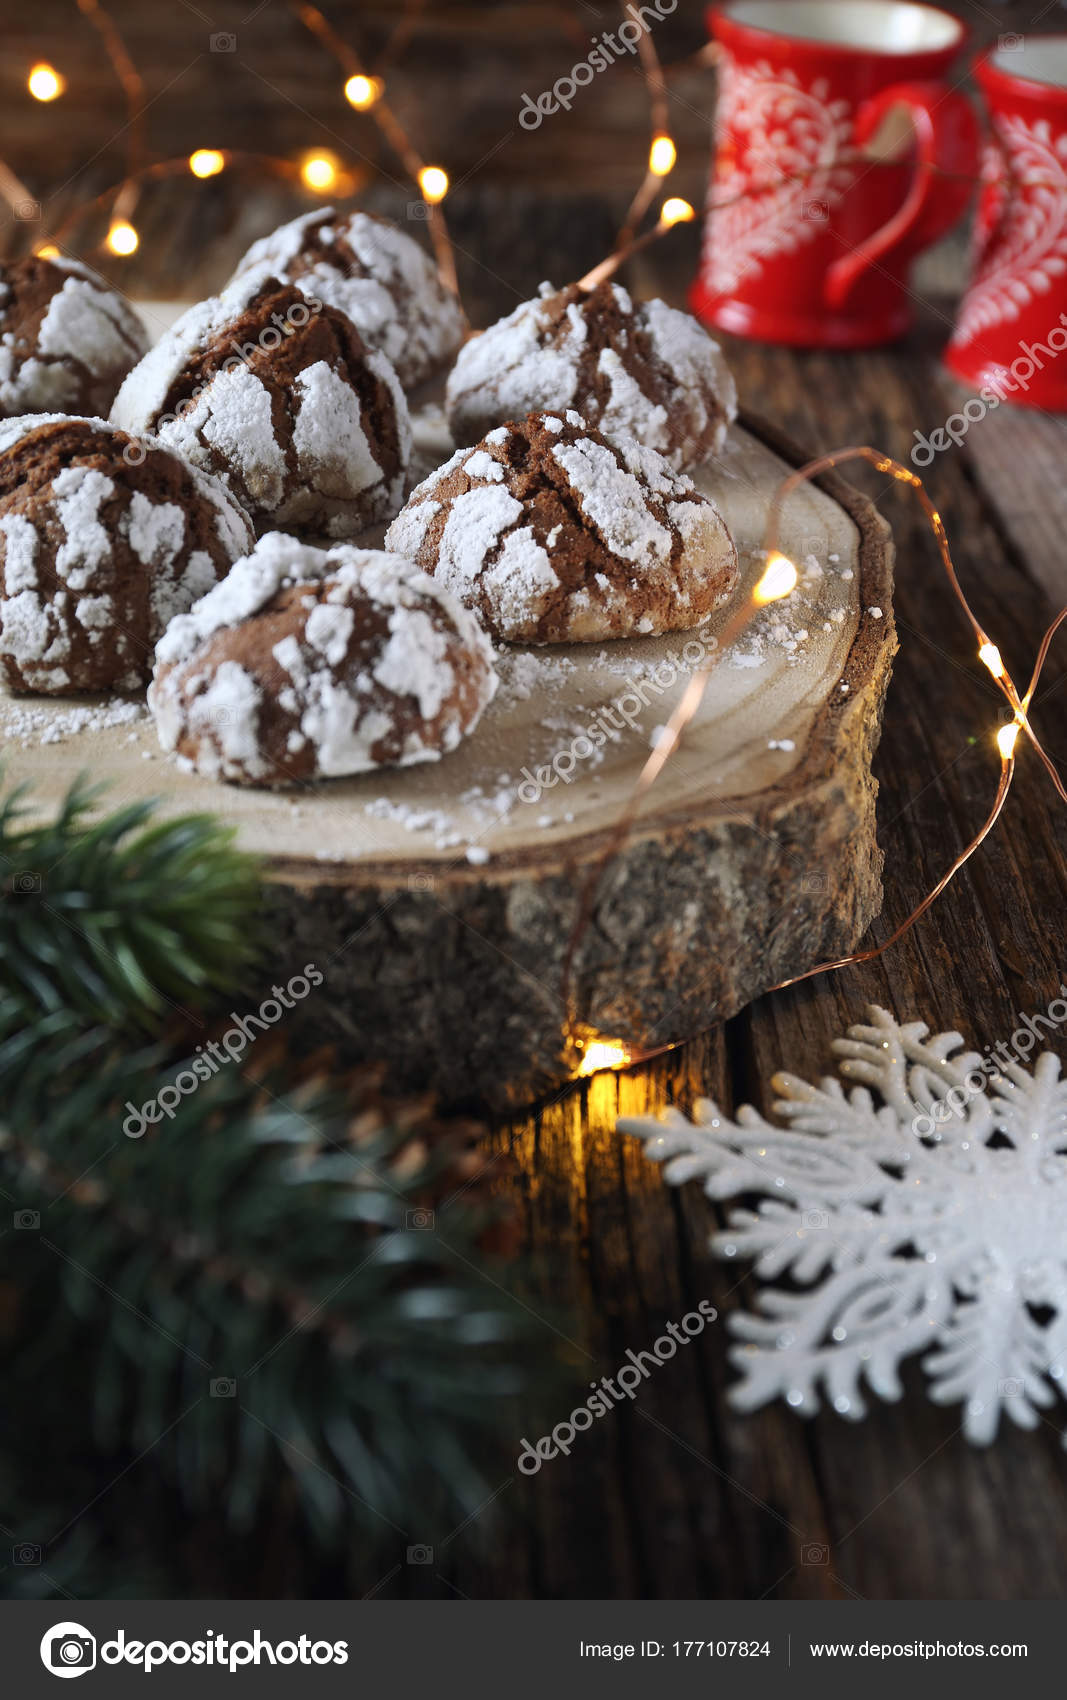 Chocolate Crinkle Cookies In Powdered Sugar And Christmas Decor